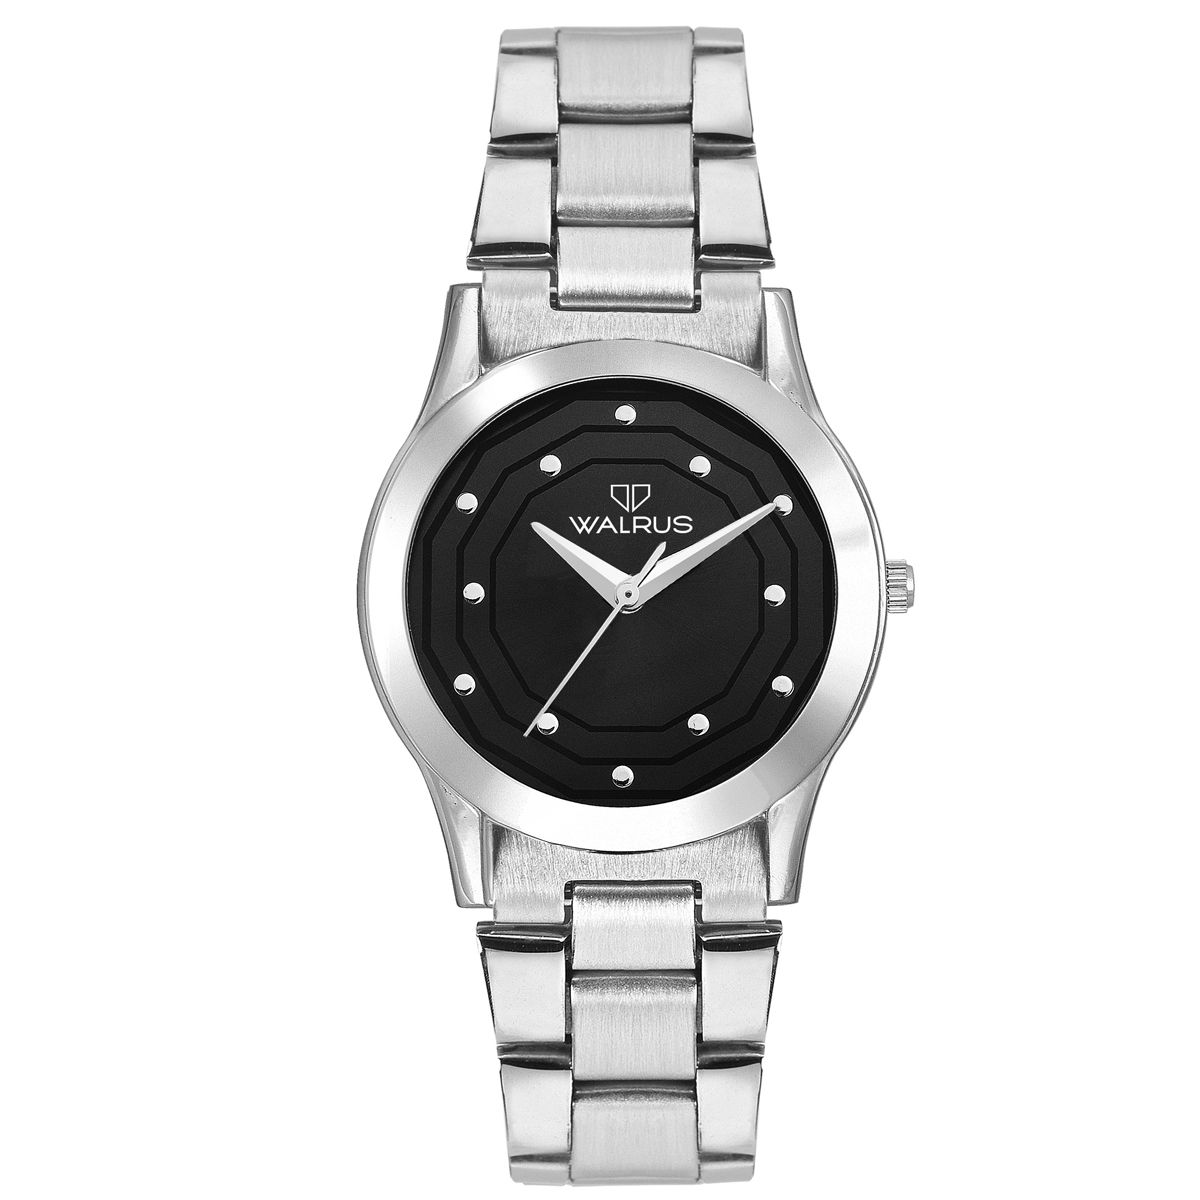 Walrus Anna Black Color Analog Women Watch -WWW-Anna -020707